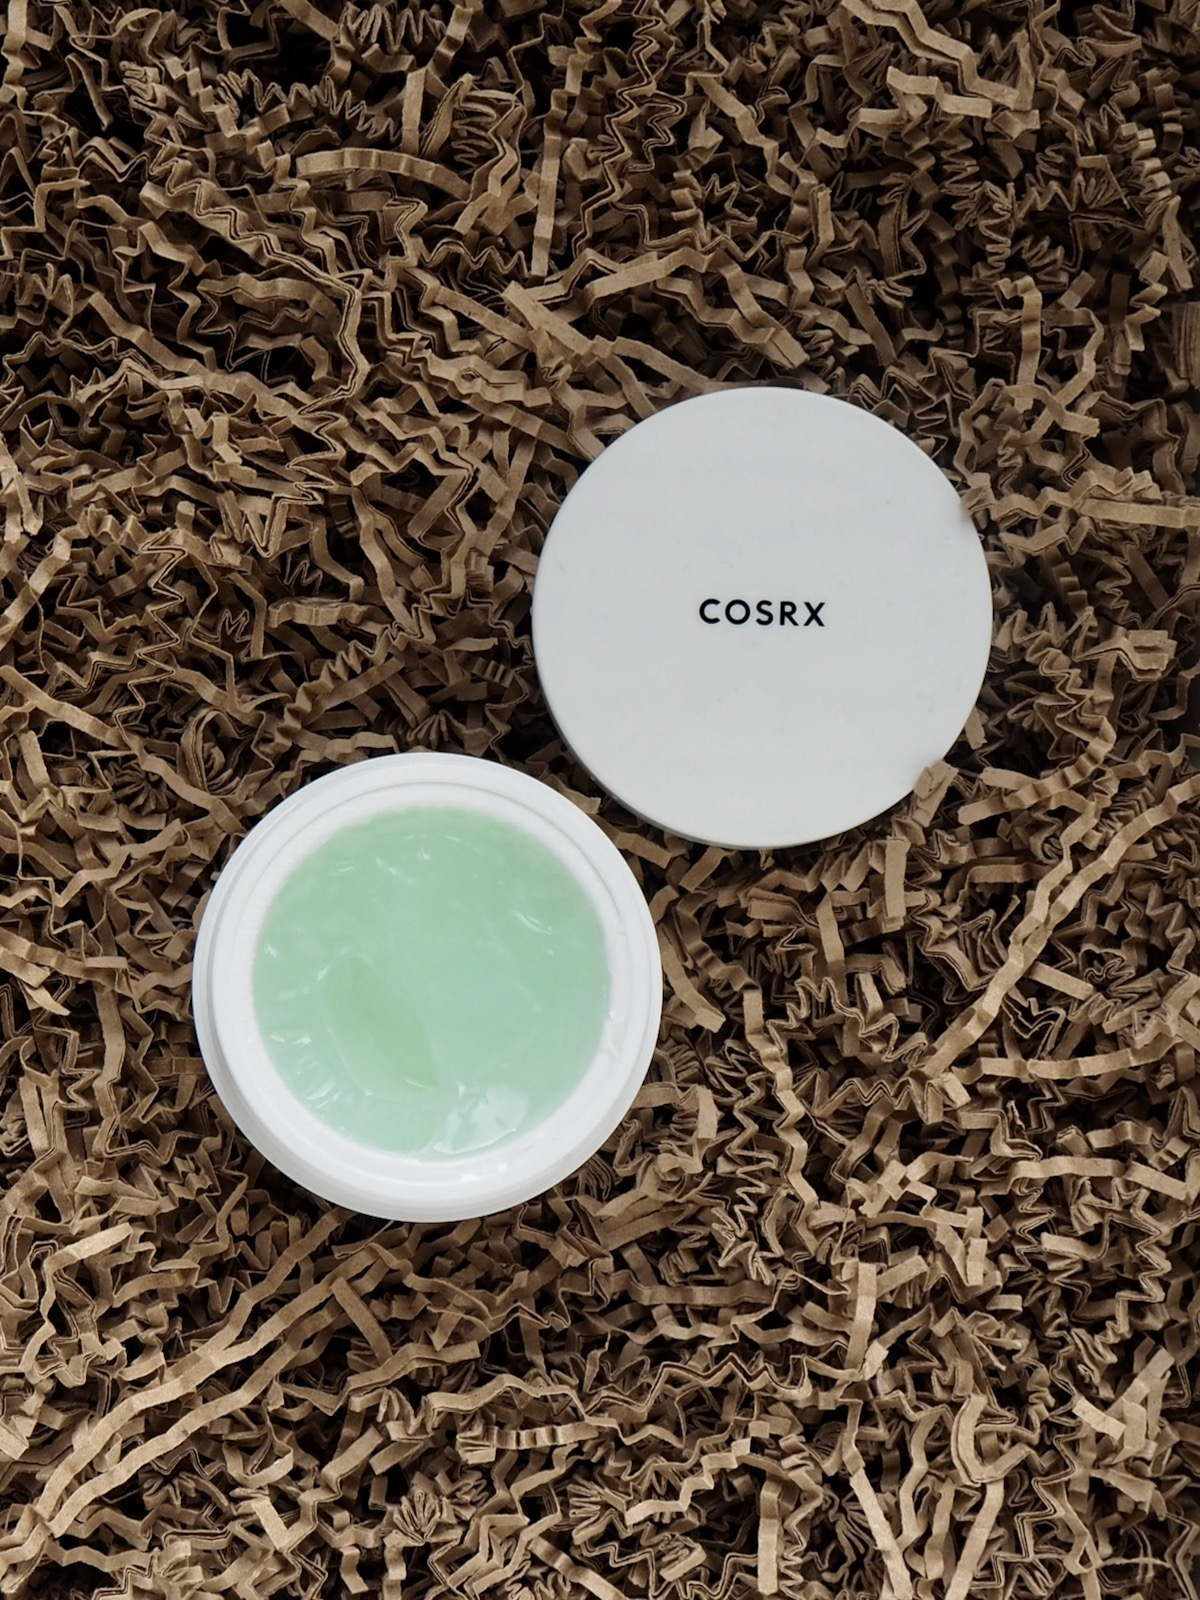 COSRX Green Tea Aqua Soothing Gel Cream offen